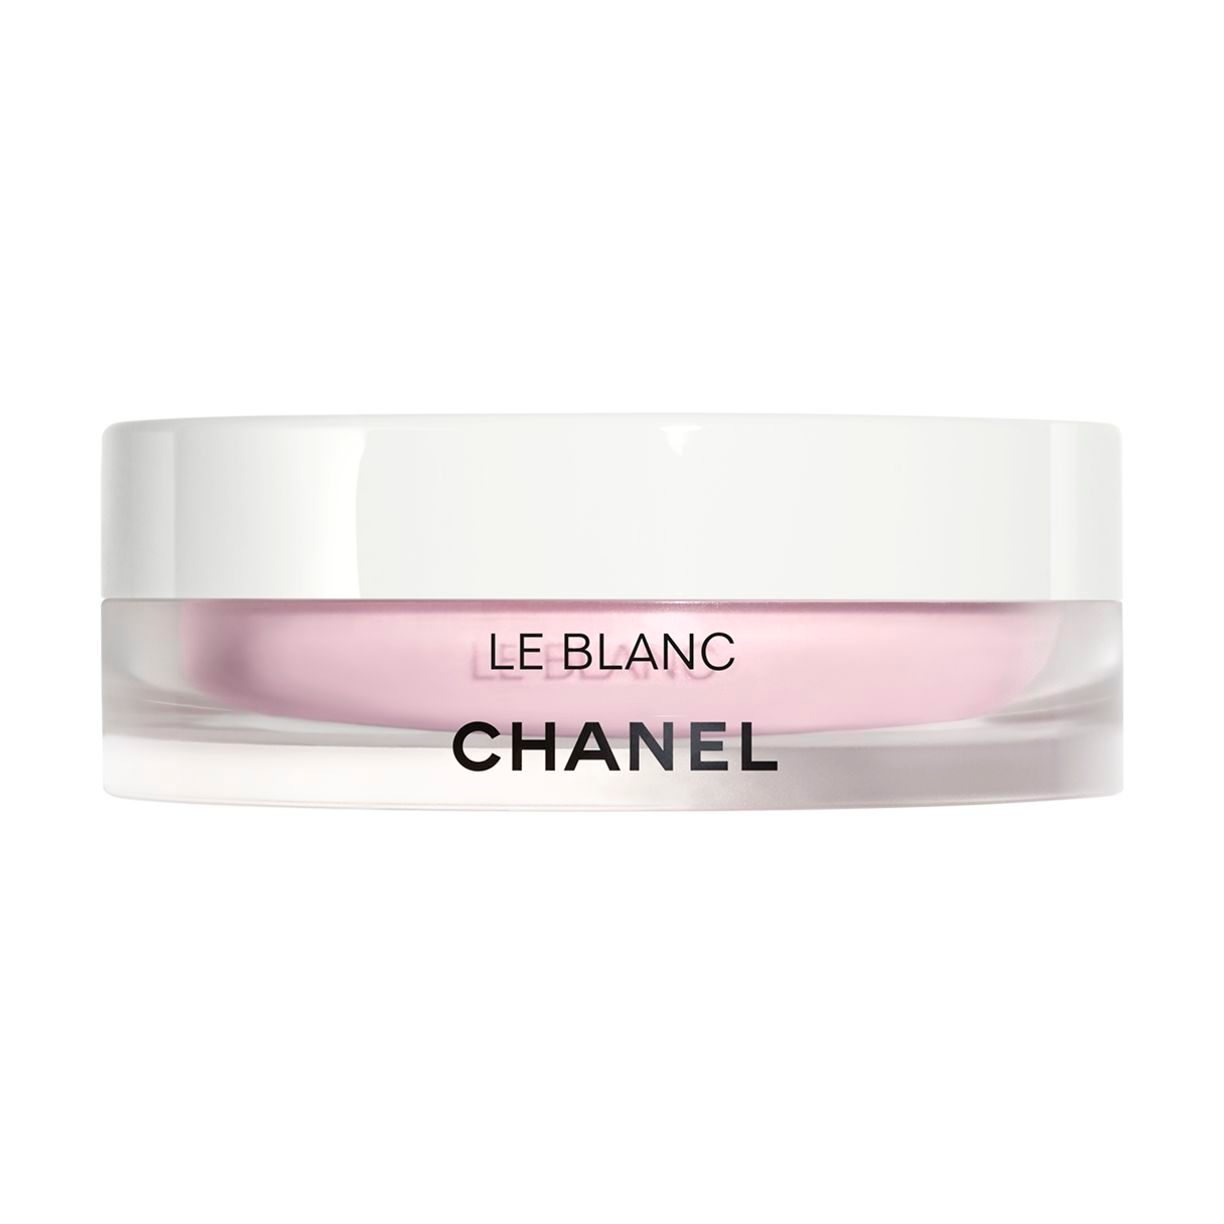 LE BLANC FRESH GLOW BRIGHTENING LOOSE POWDER SPF 10 / PA+